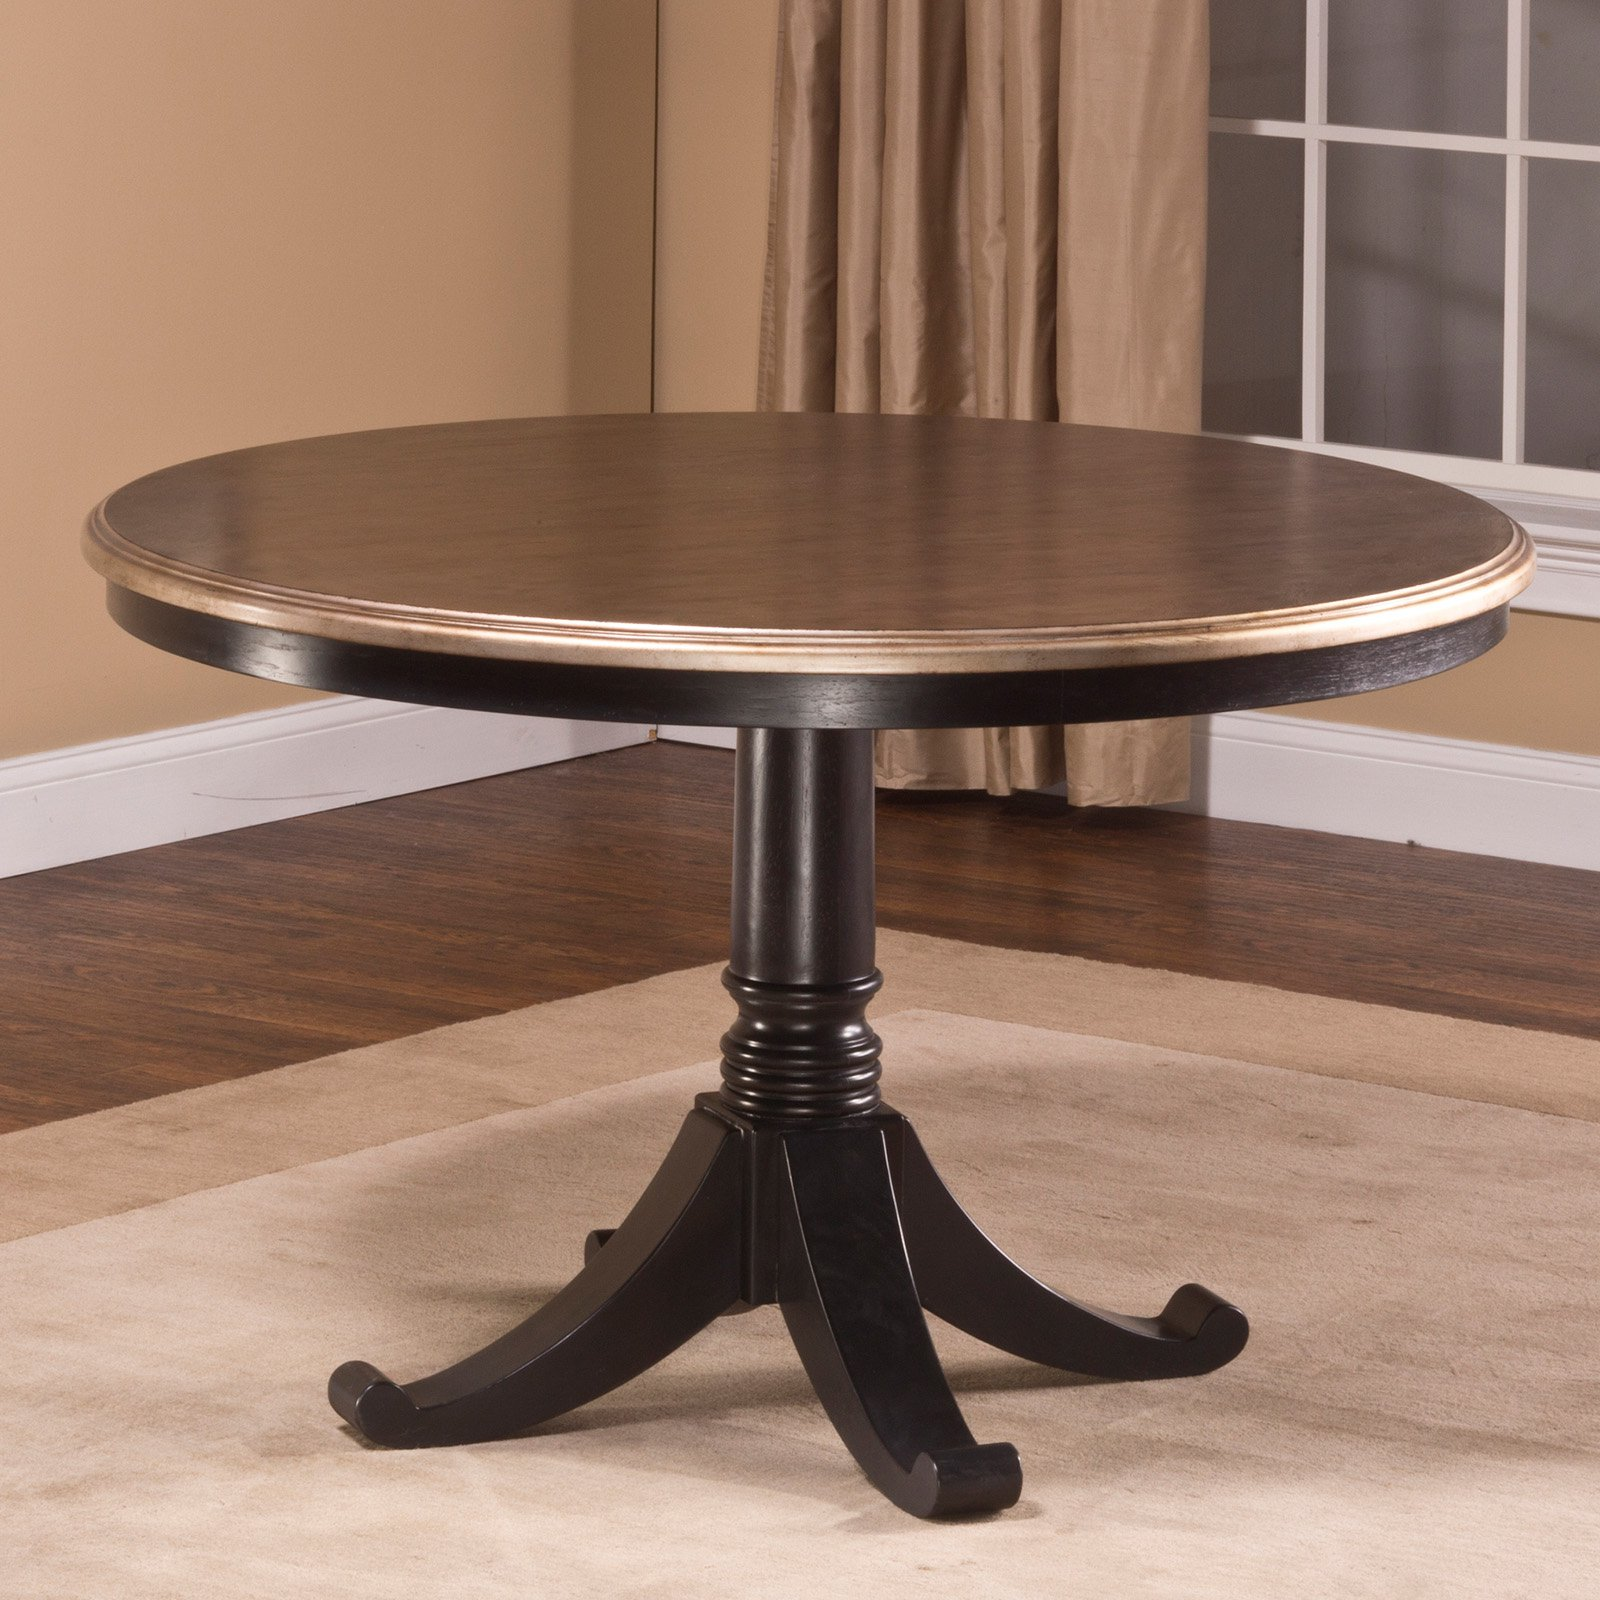 Hillsdale Bennington Pedestal Dining Table by Hillsdale